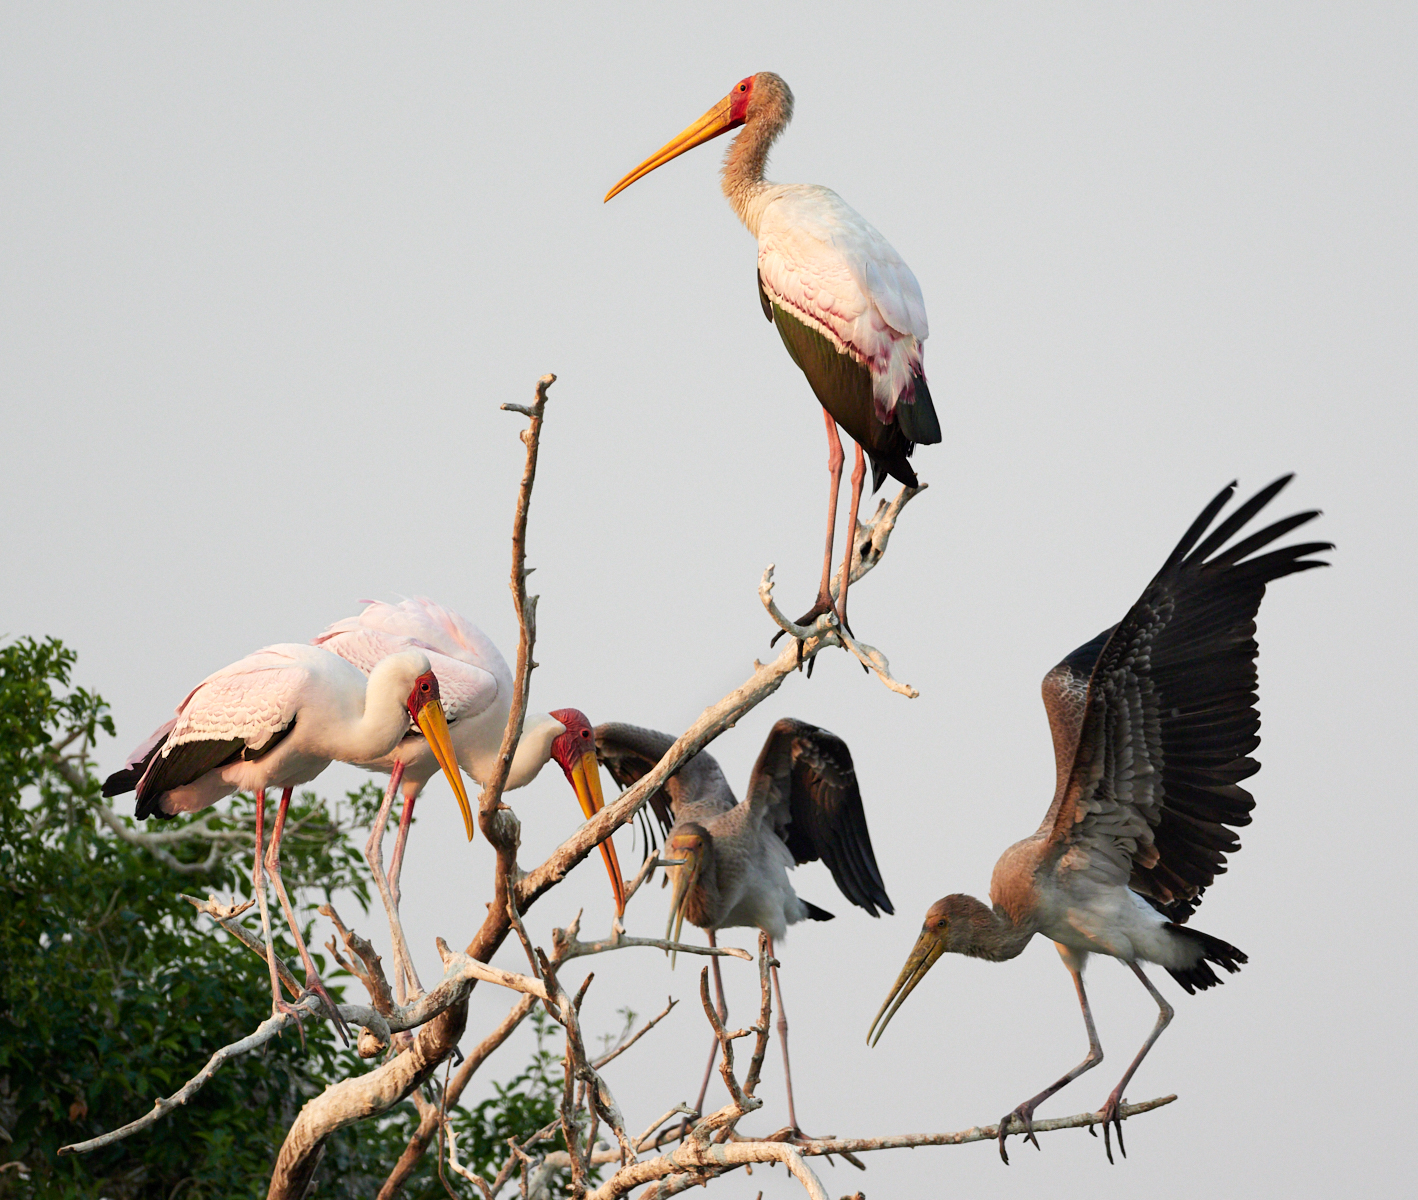 Yellow billed stork roost 1600x1200 sRGB.jpg